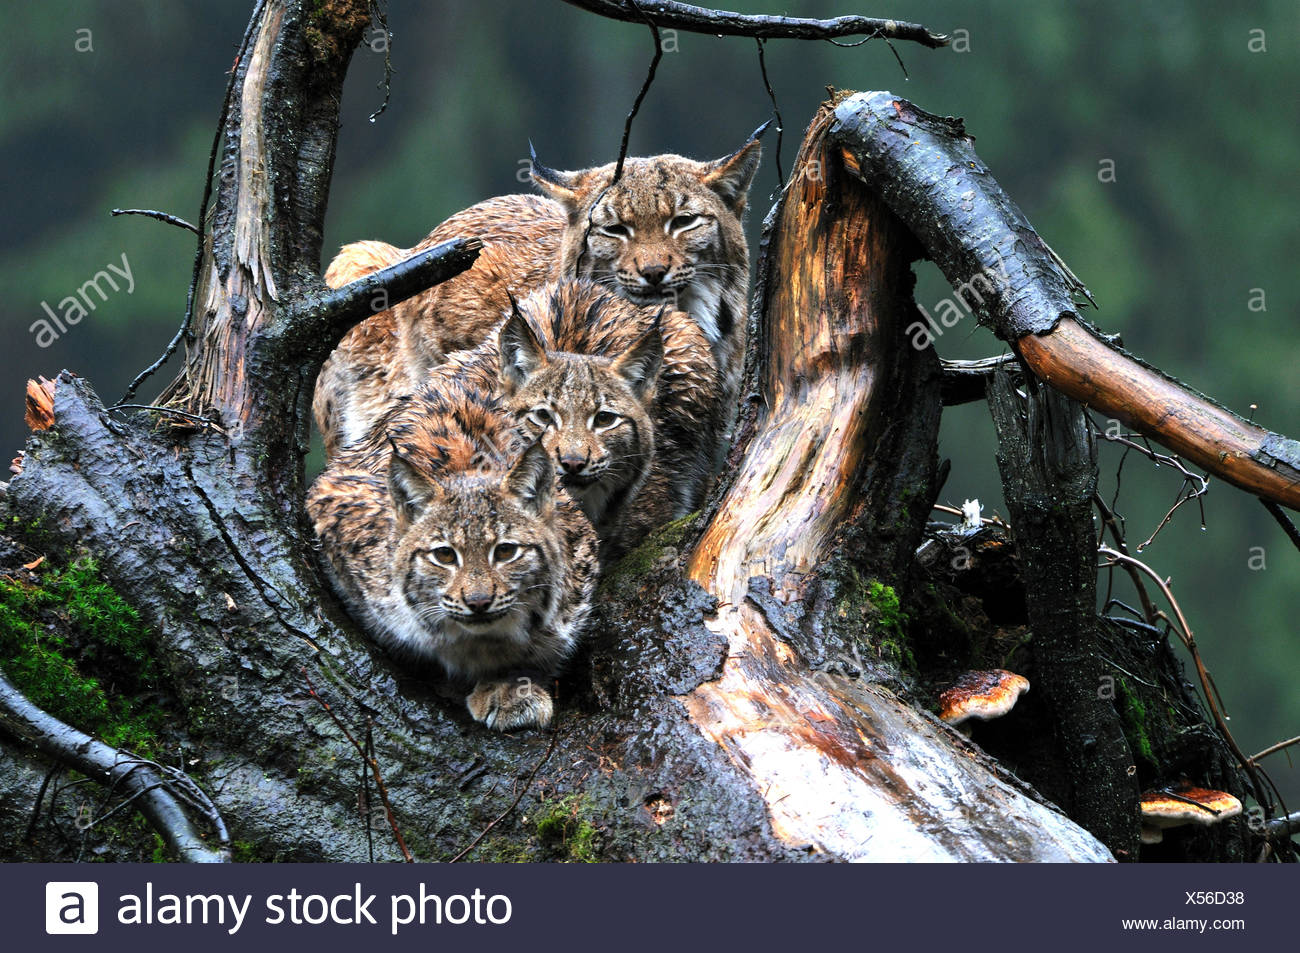 Lynx cat big cat predator cats wildcat big cats lynxes fur animals winter winter lynx snow Lynx lynx Eurasian lynx European - Stock Image